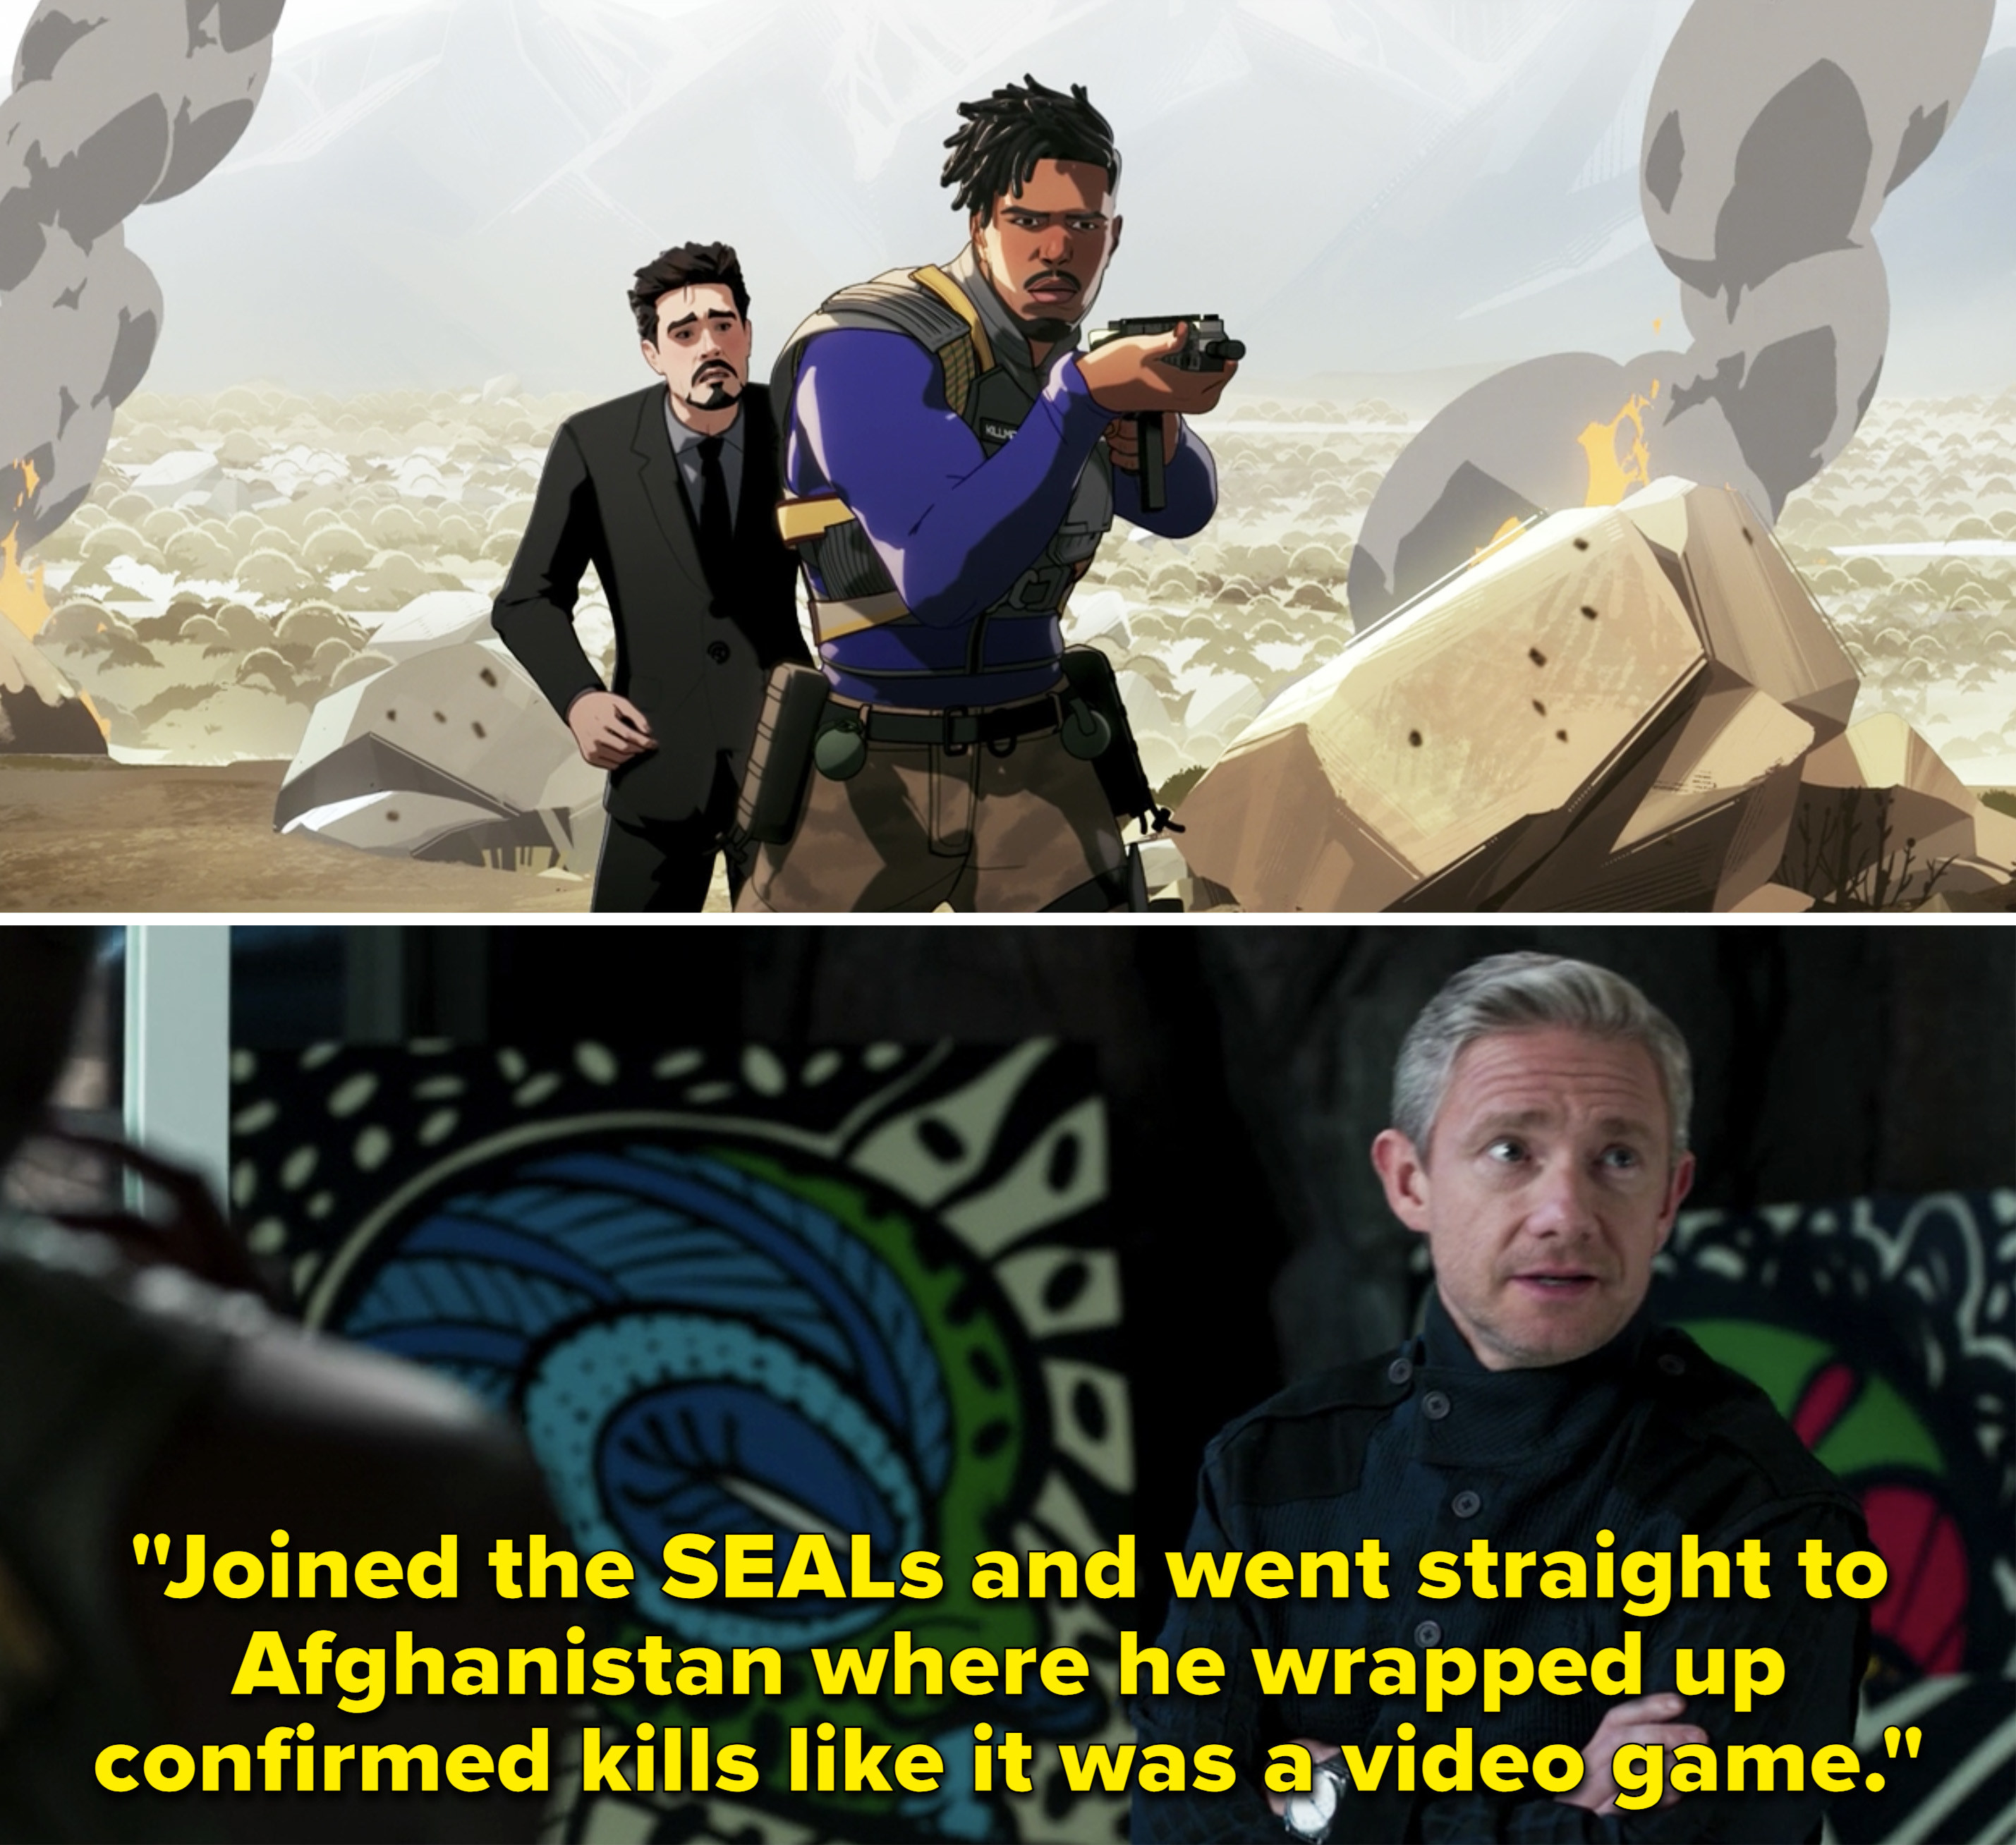 """Ross saying, """"Joined the SEALS and went straight to Afghanistan where he wrapped up confirmed kills like it was a video game"""""""